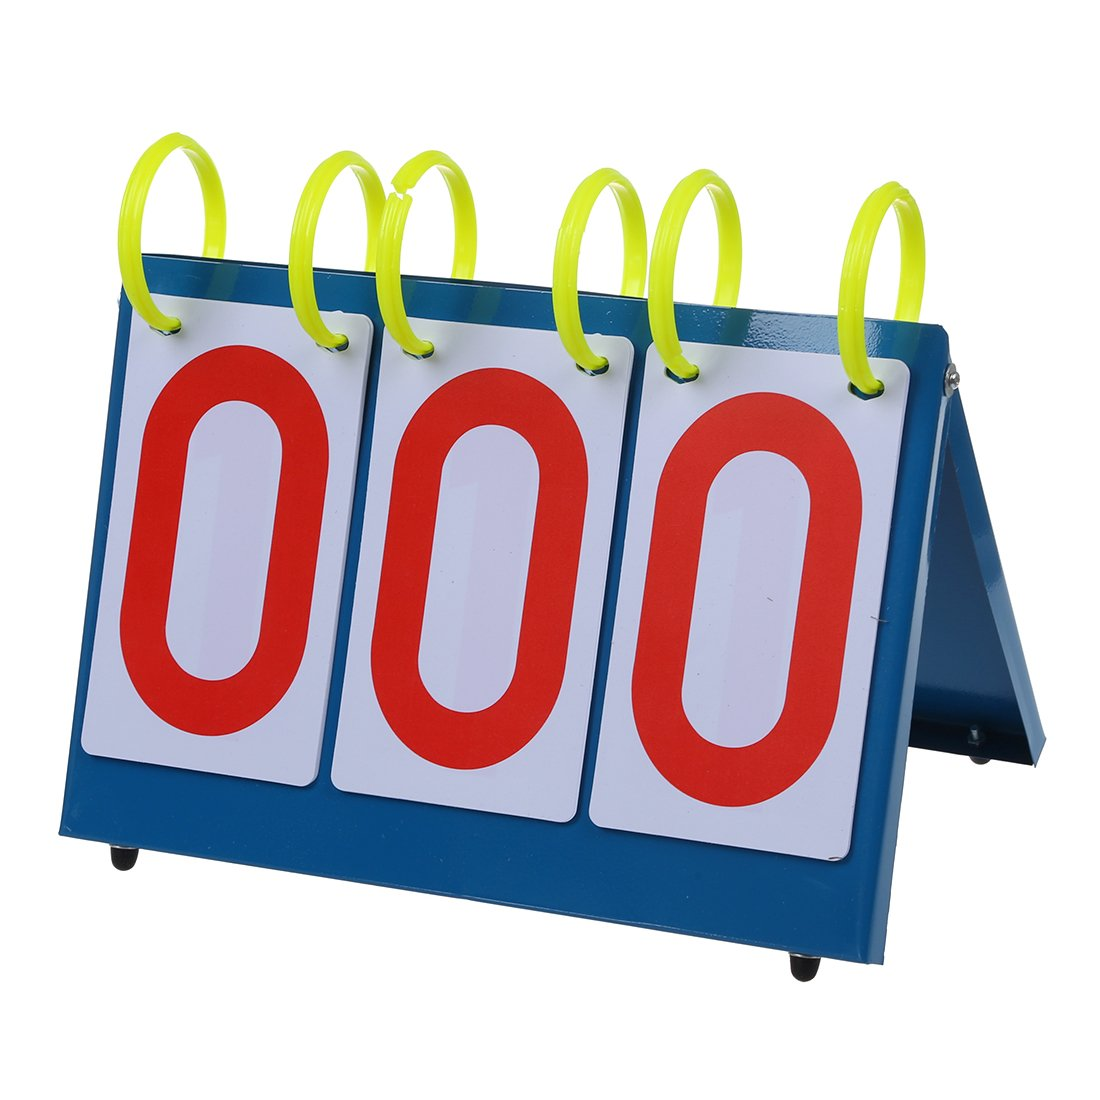 WOVELOT Multi-Purpose Sports Three Digit Flip Scoreboard for Knowledge Contest.